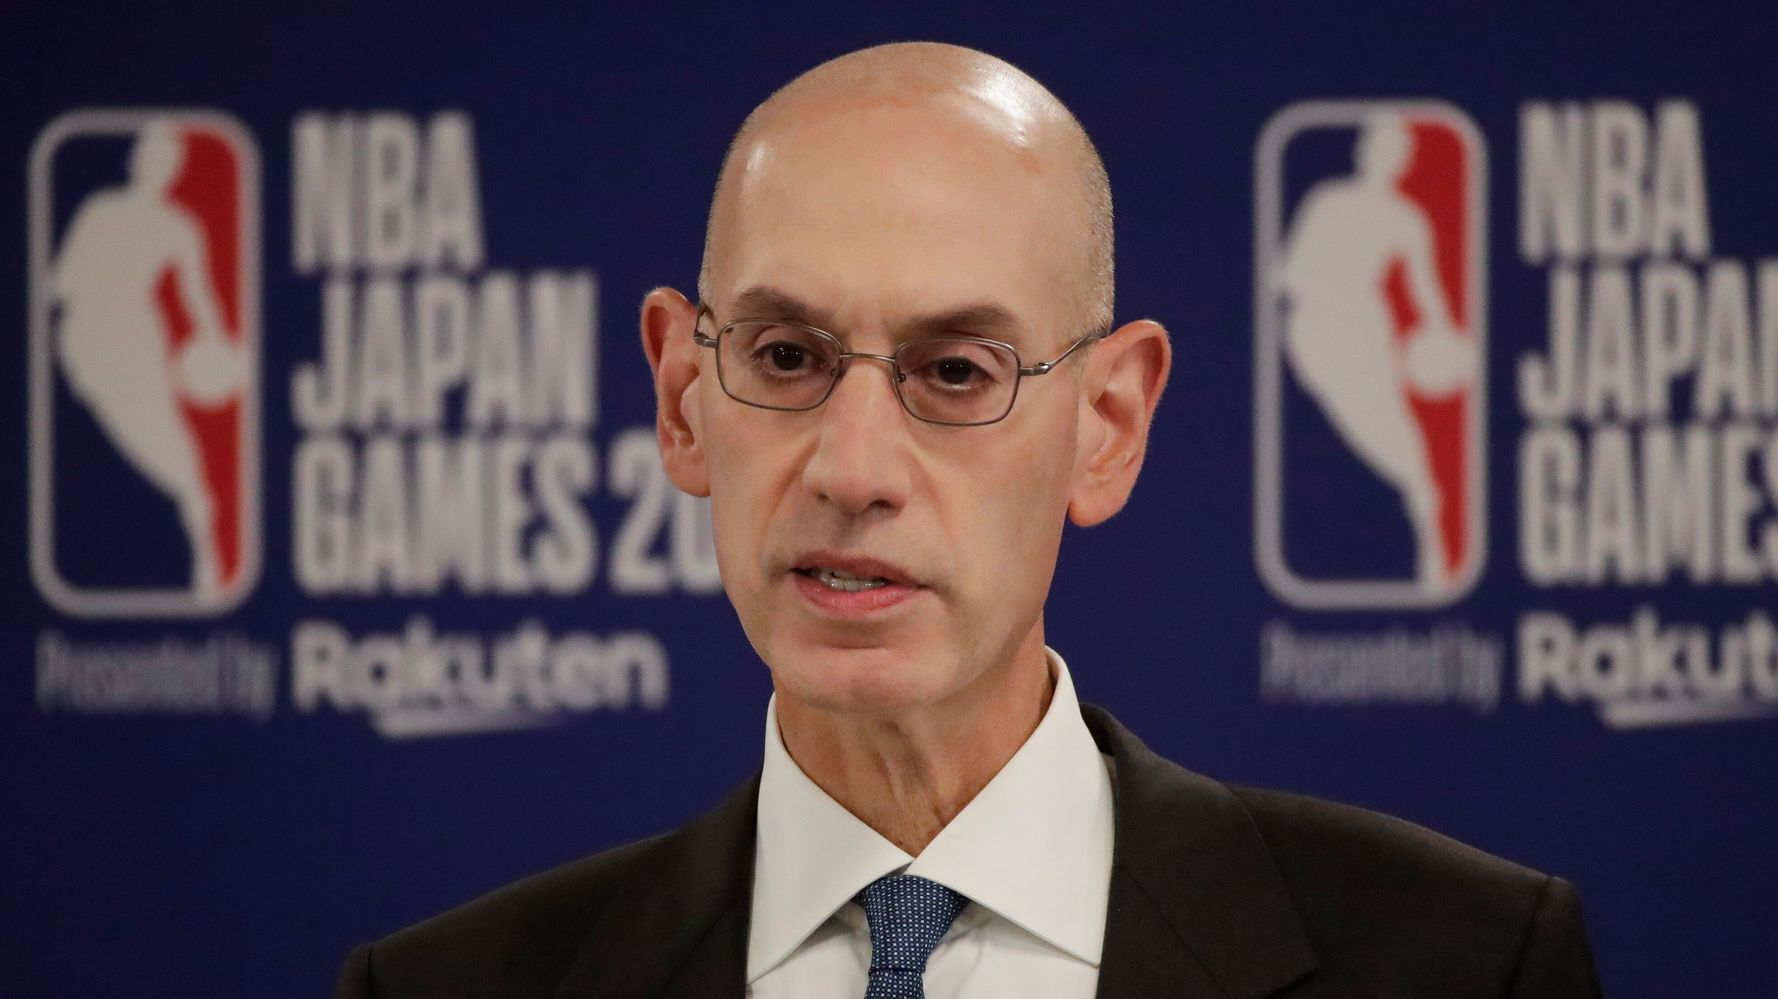 Westlake Legal Group 5d9e649320000069054ff206 Lawmakers: NBA Should Have 'Courage' To Stand Up To China